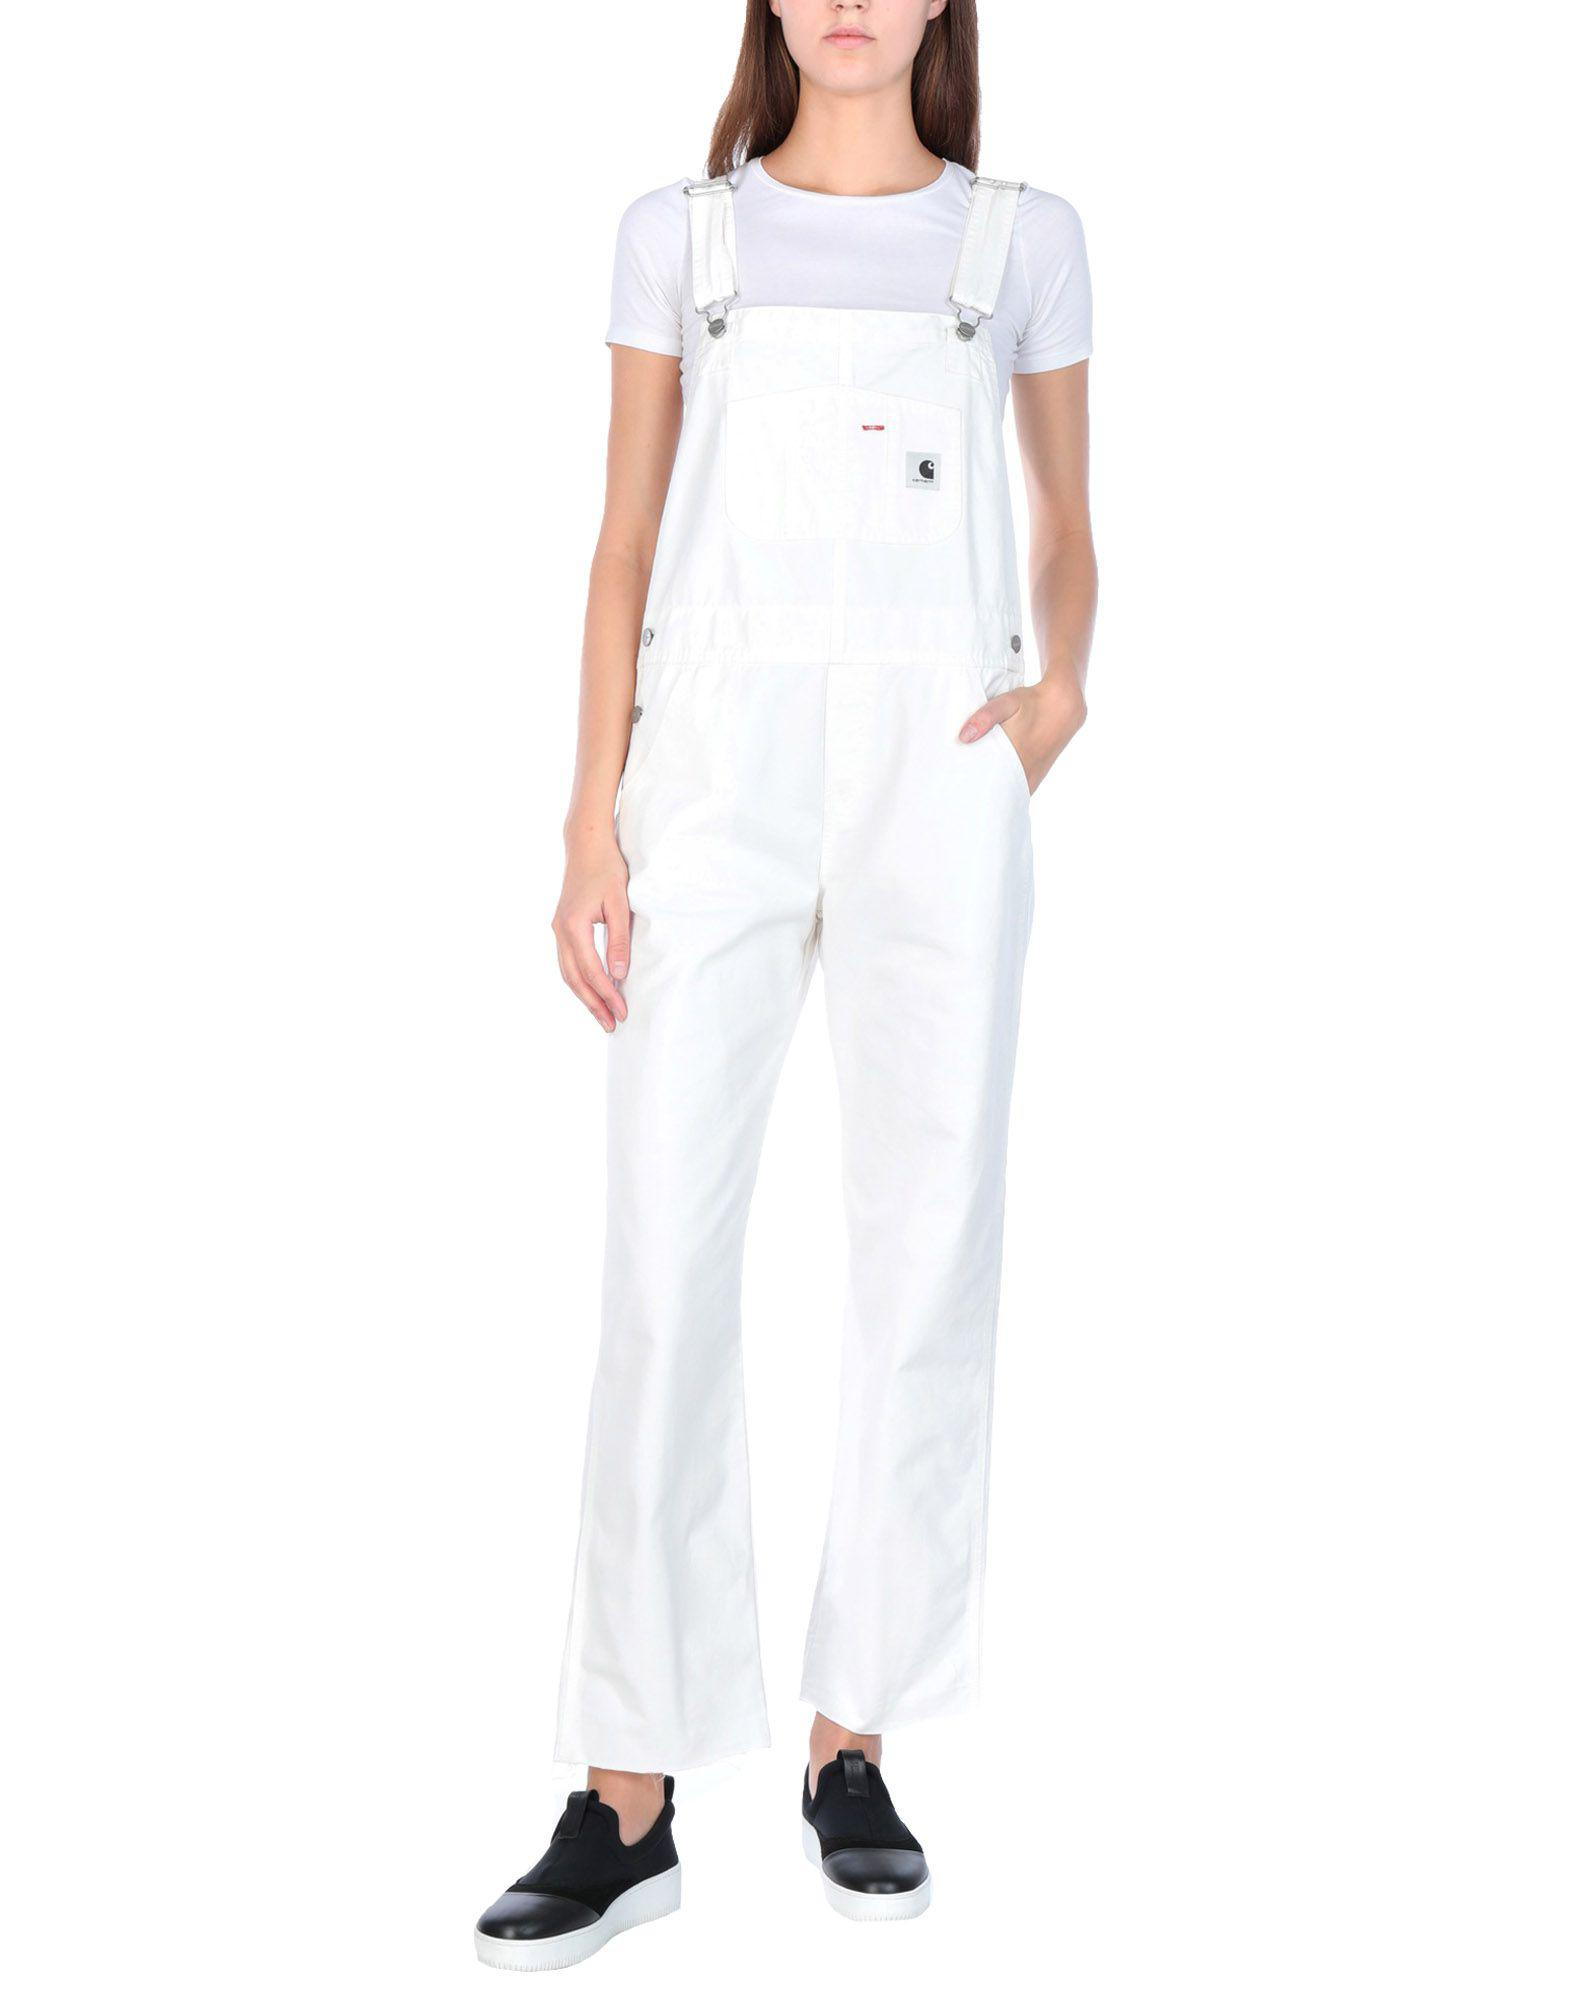 buy good many choices of watch Women's White Overalls